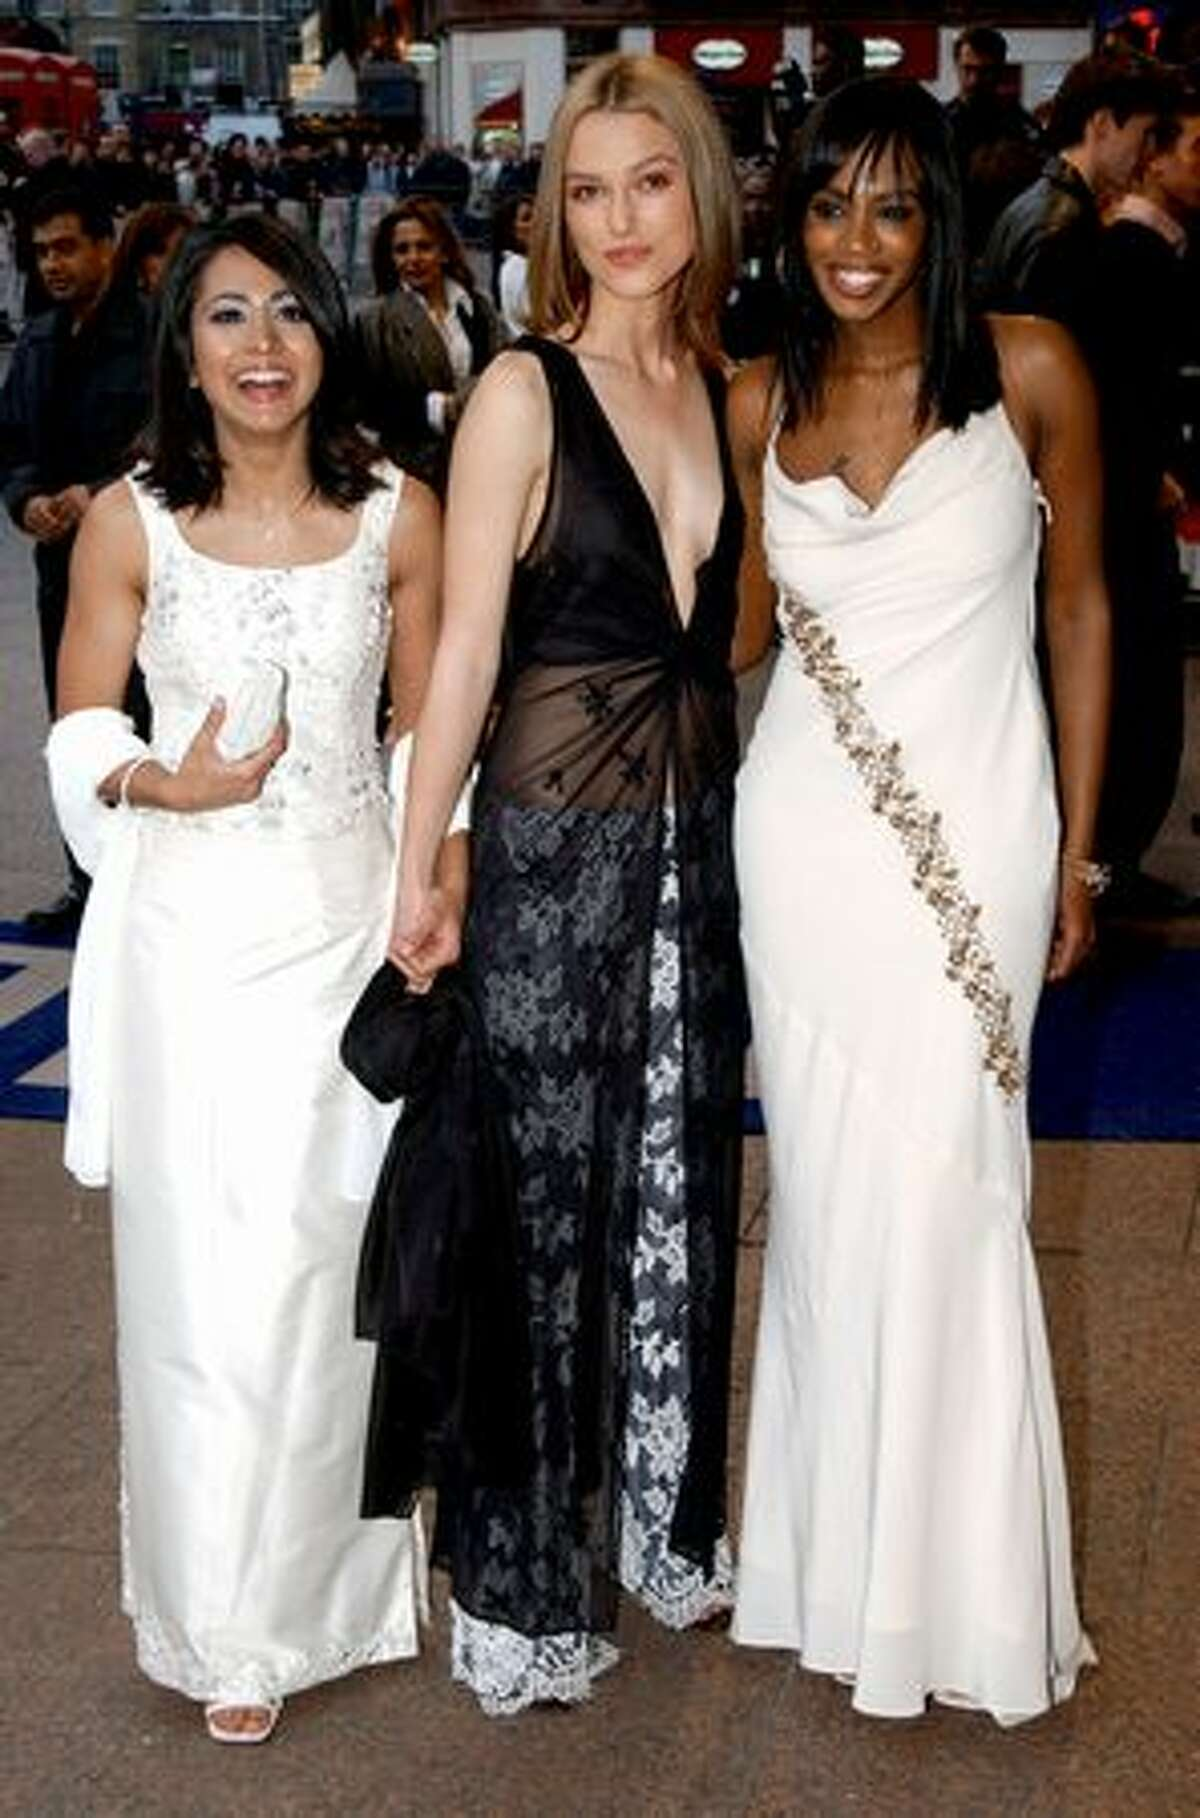 Knightley (center) with her co-stars Parminder Nagra (left) and Shazney Lewis at the premiere of